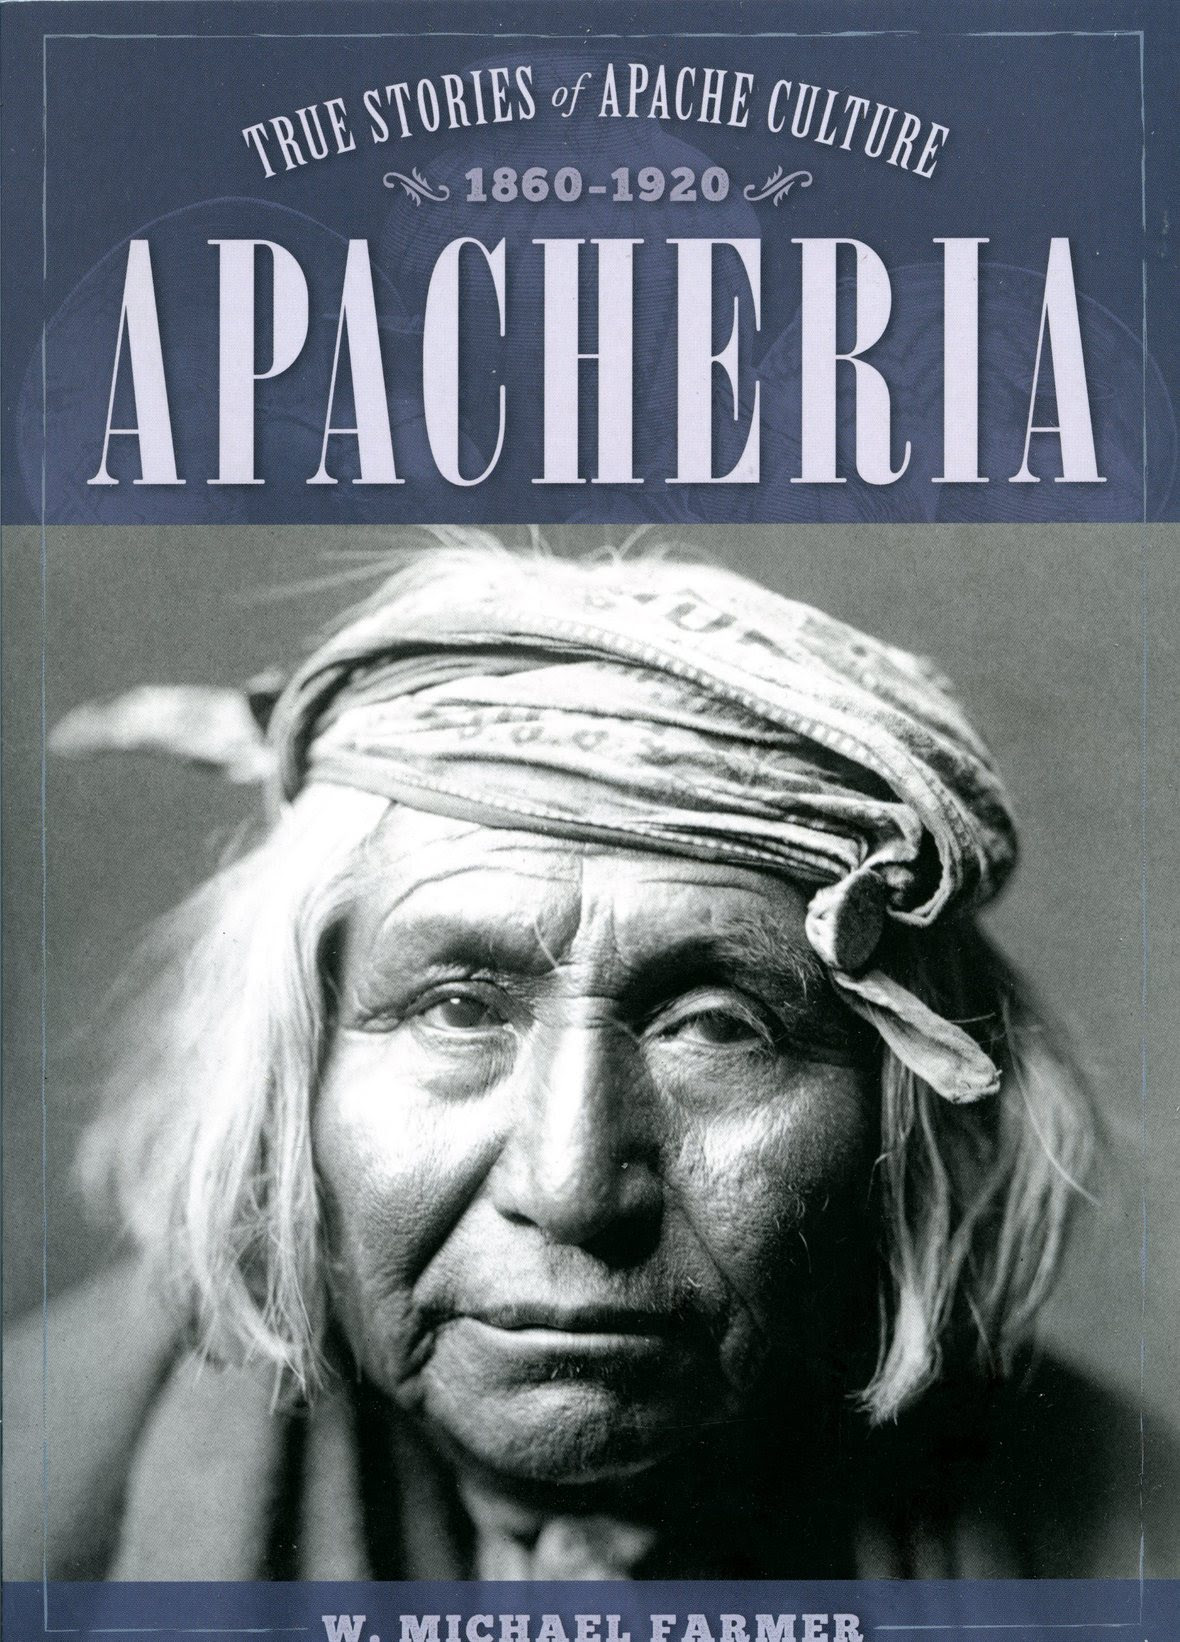 Farmer-Apacheria086